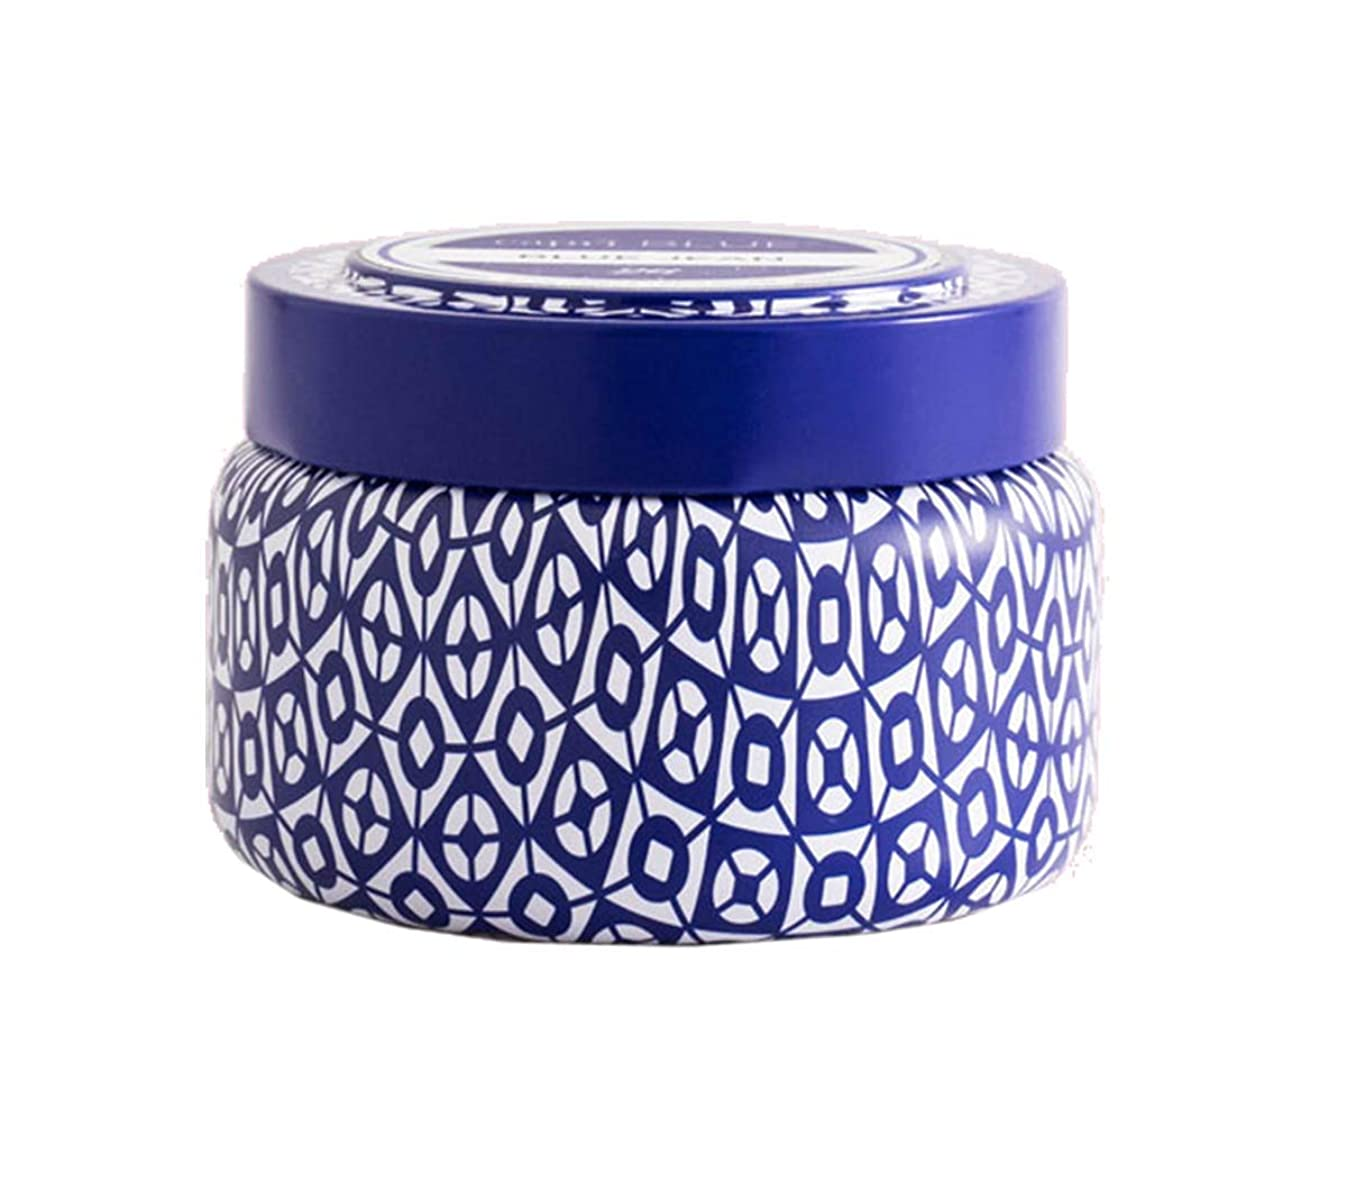 Capri Blue Paris Candle, 8.5 oz